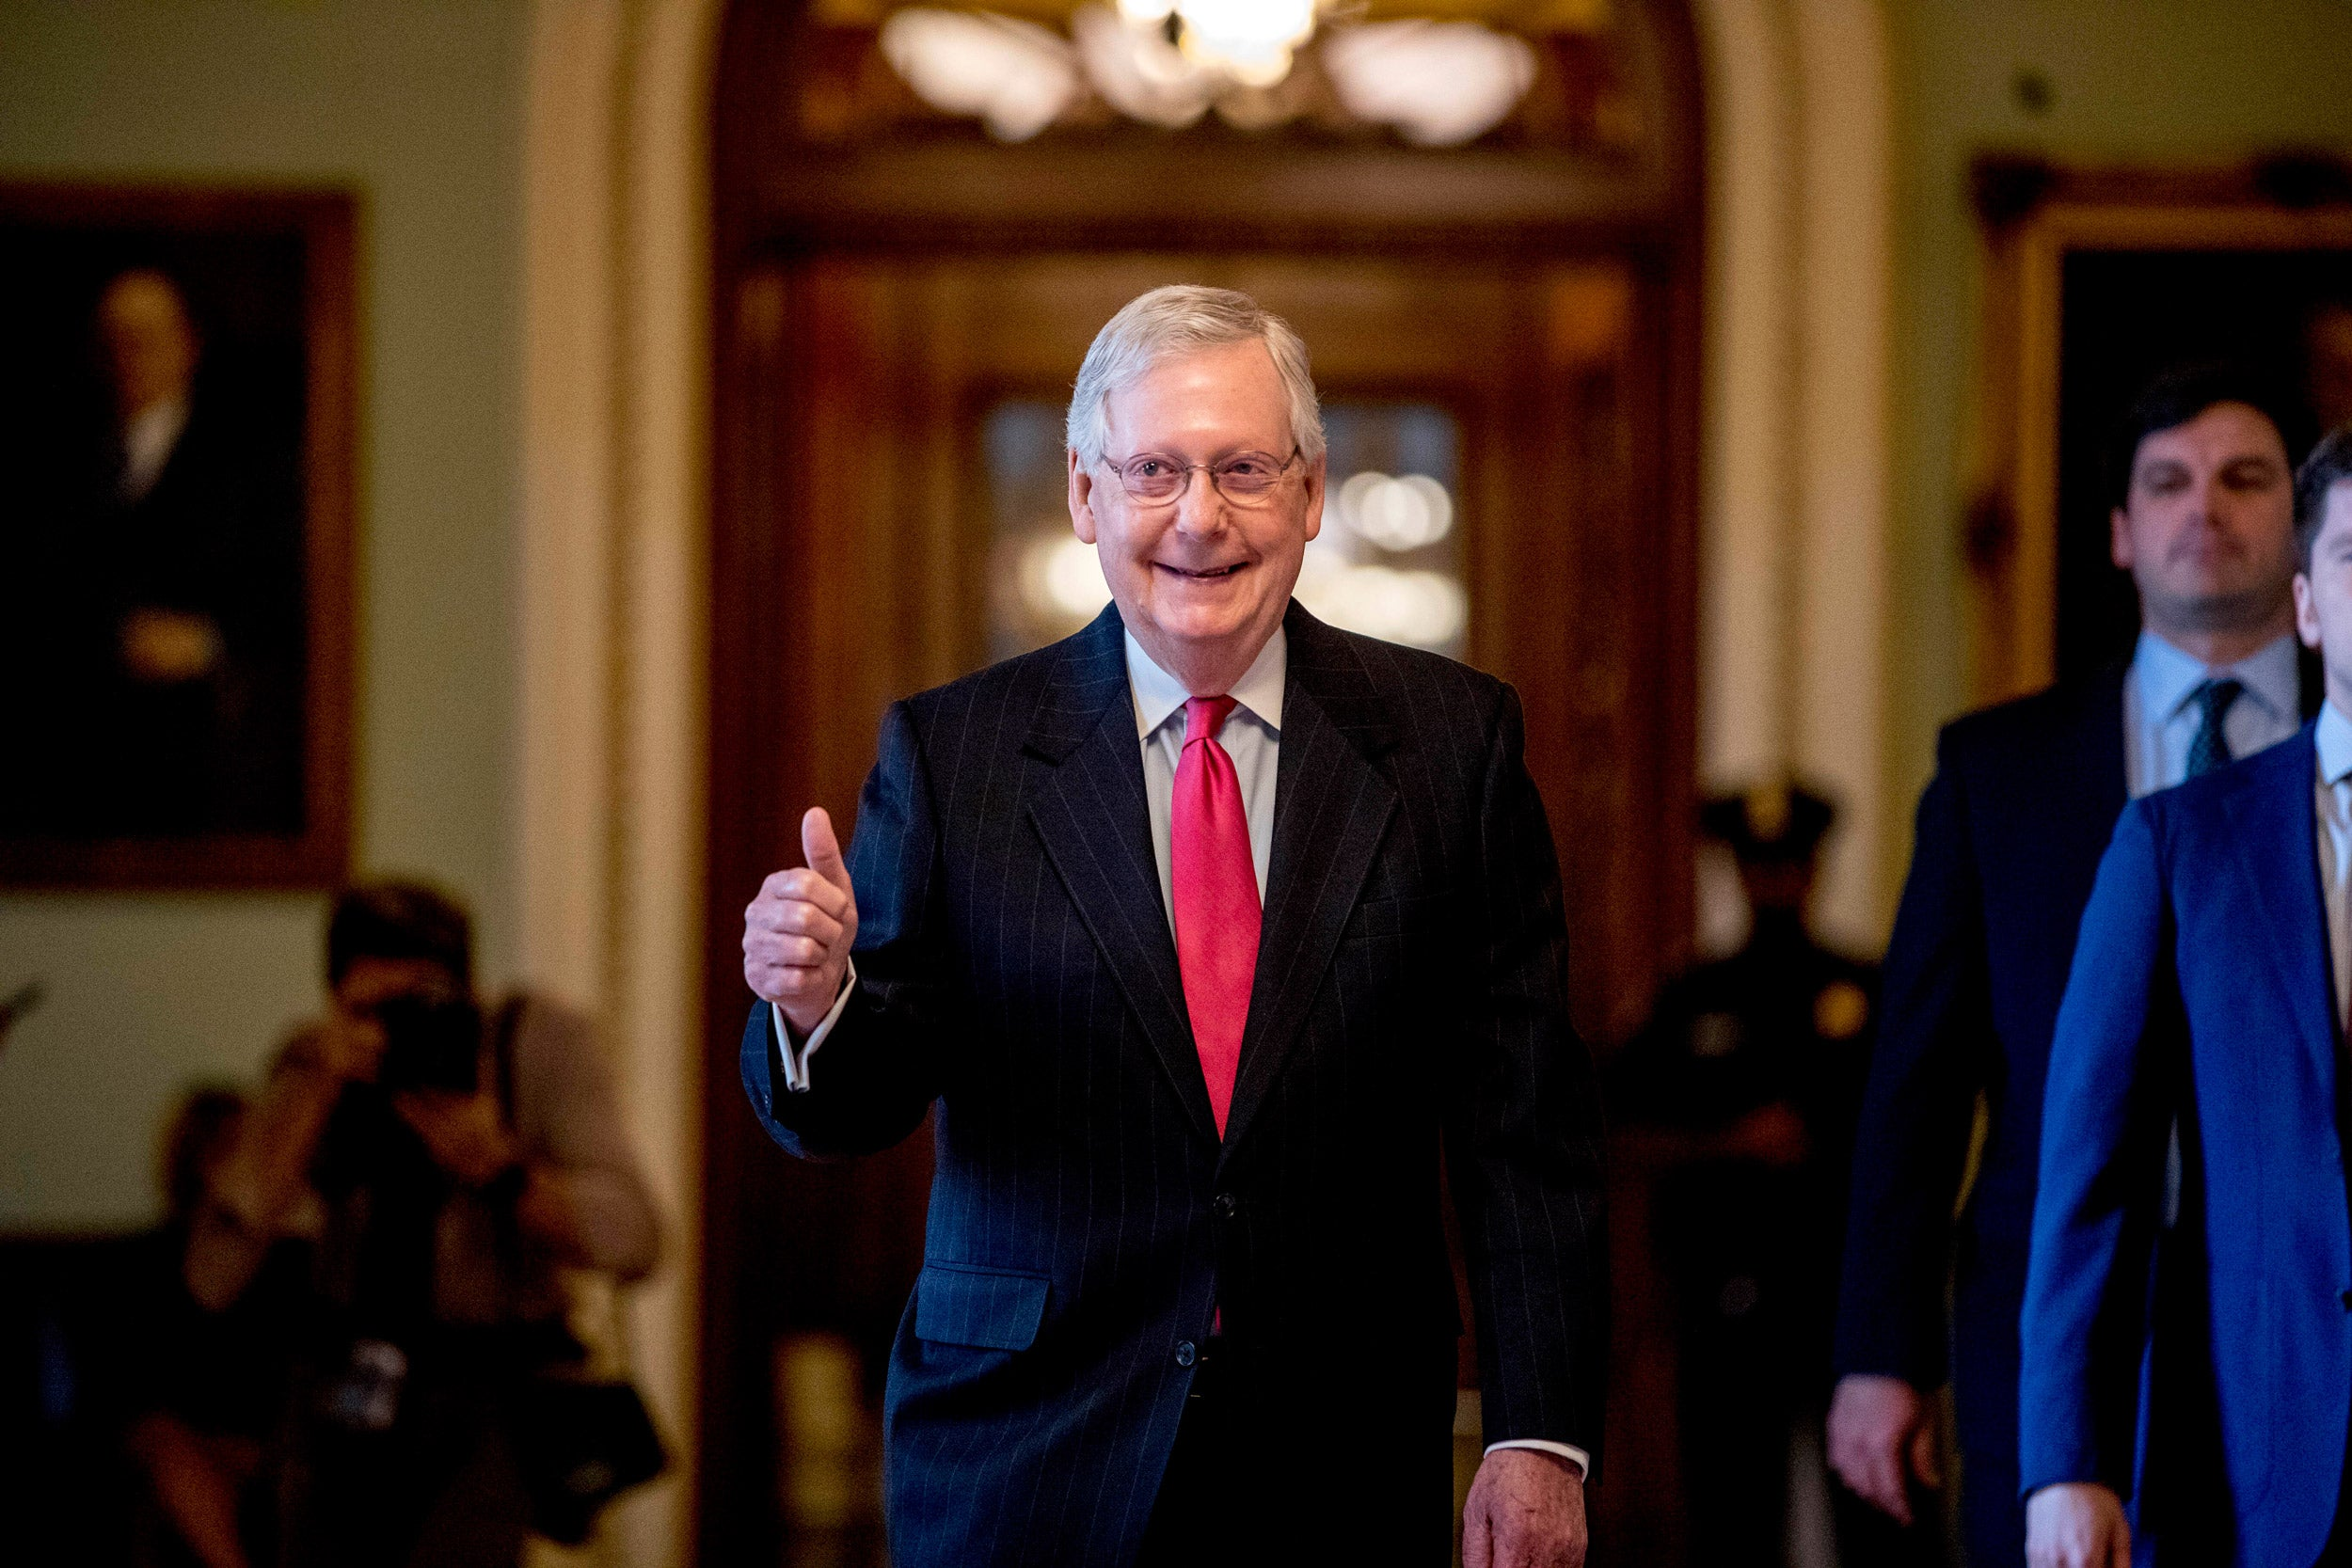 Senate Majority Leader Mitch McConnell gives a thumbs up